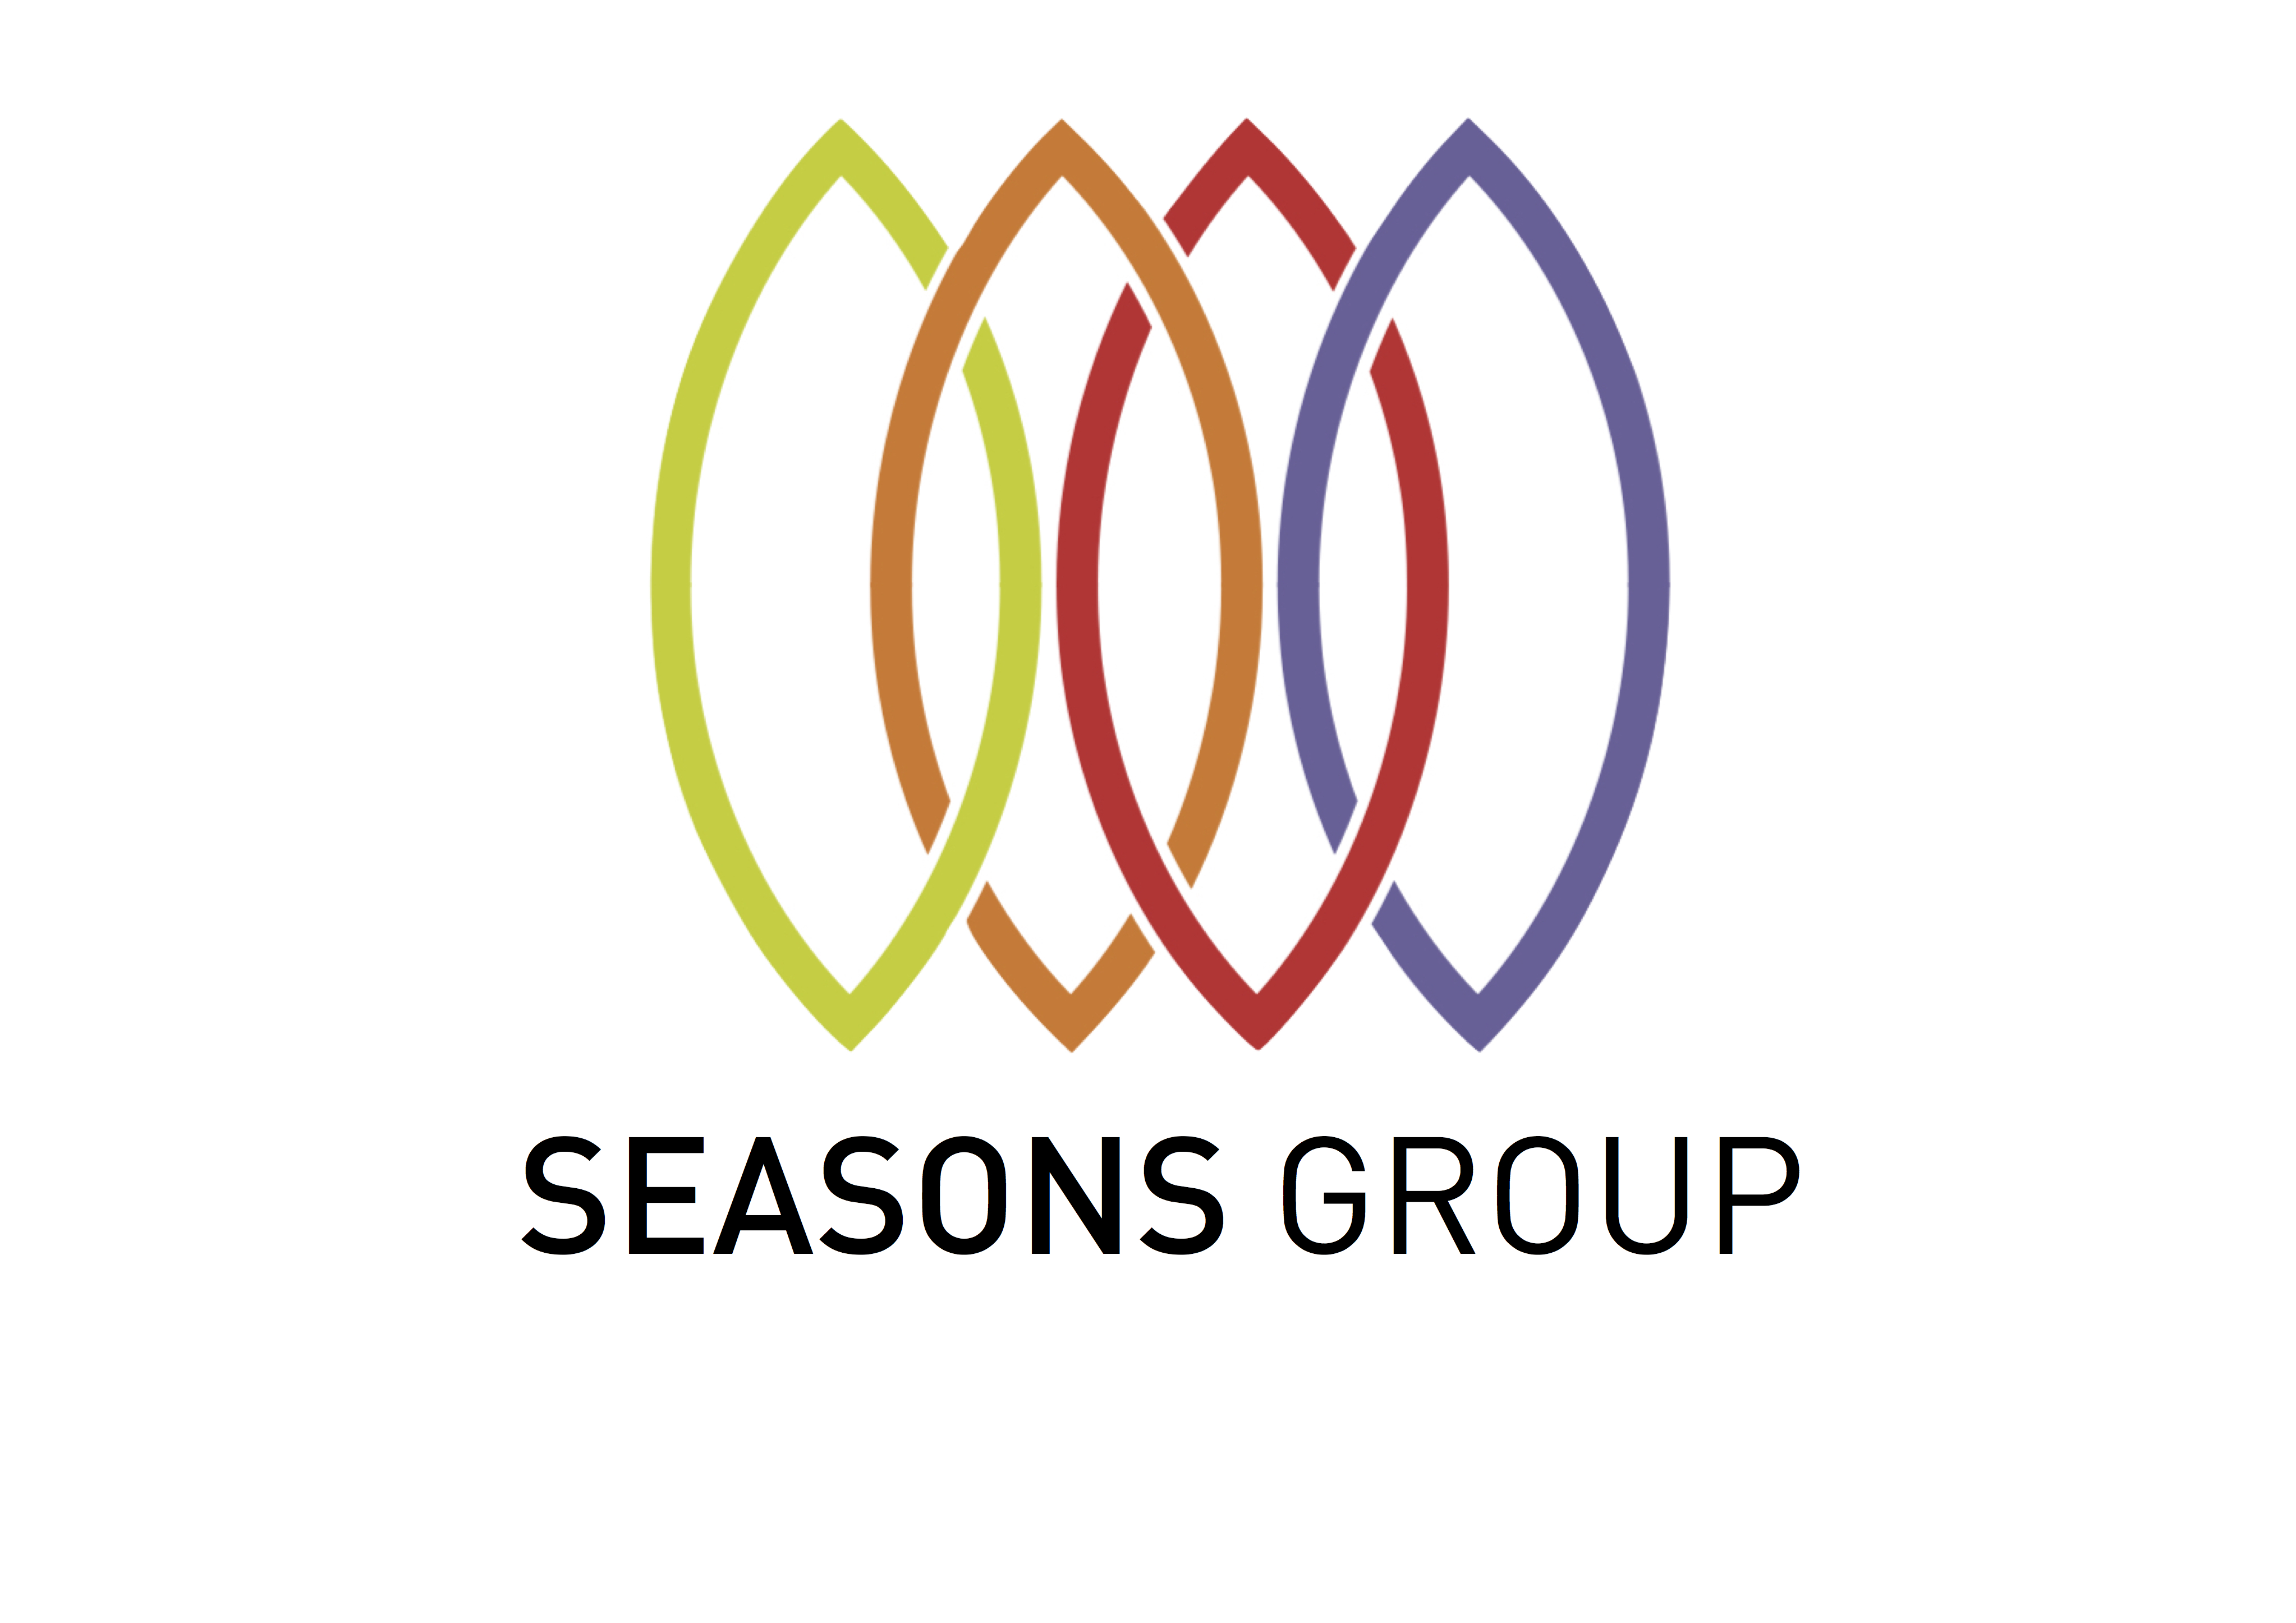 Seasons Group Logo font 60 House of hobbit Extra Project